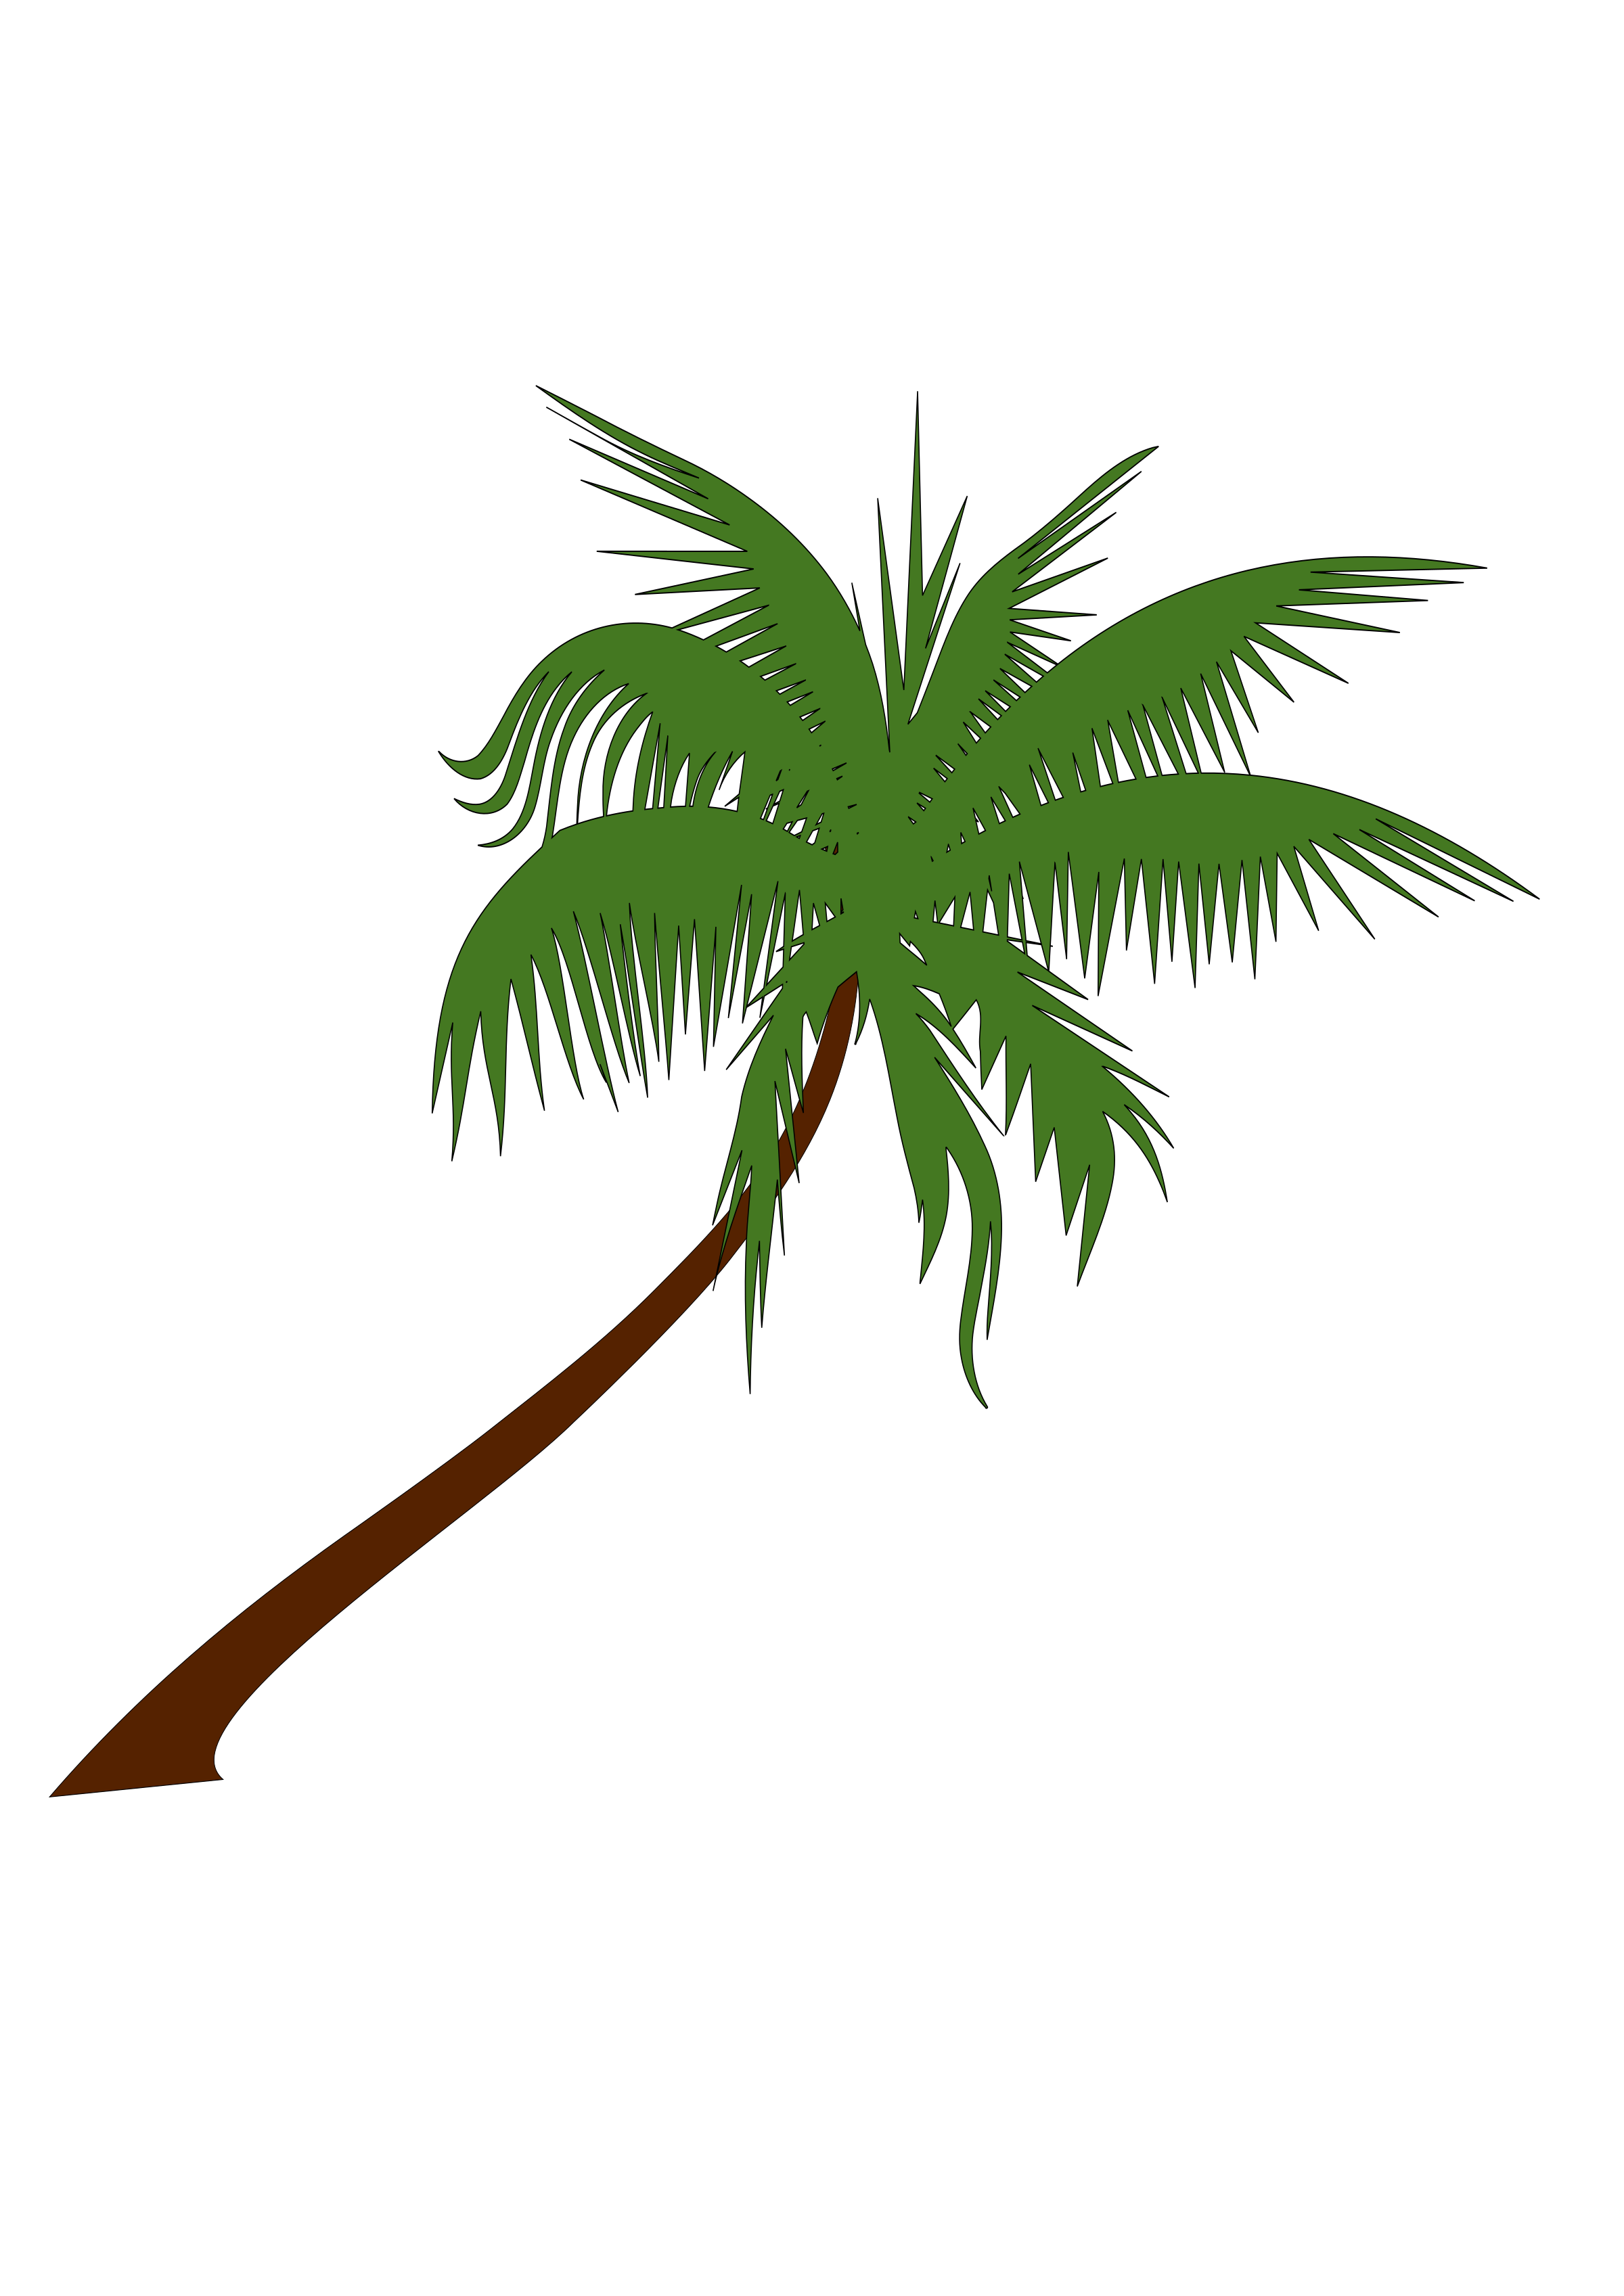 Coconut tree png images. Palm clipart palm leaf clip royalty free